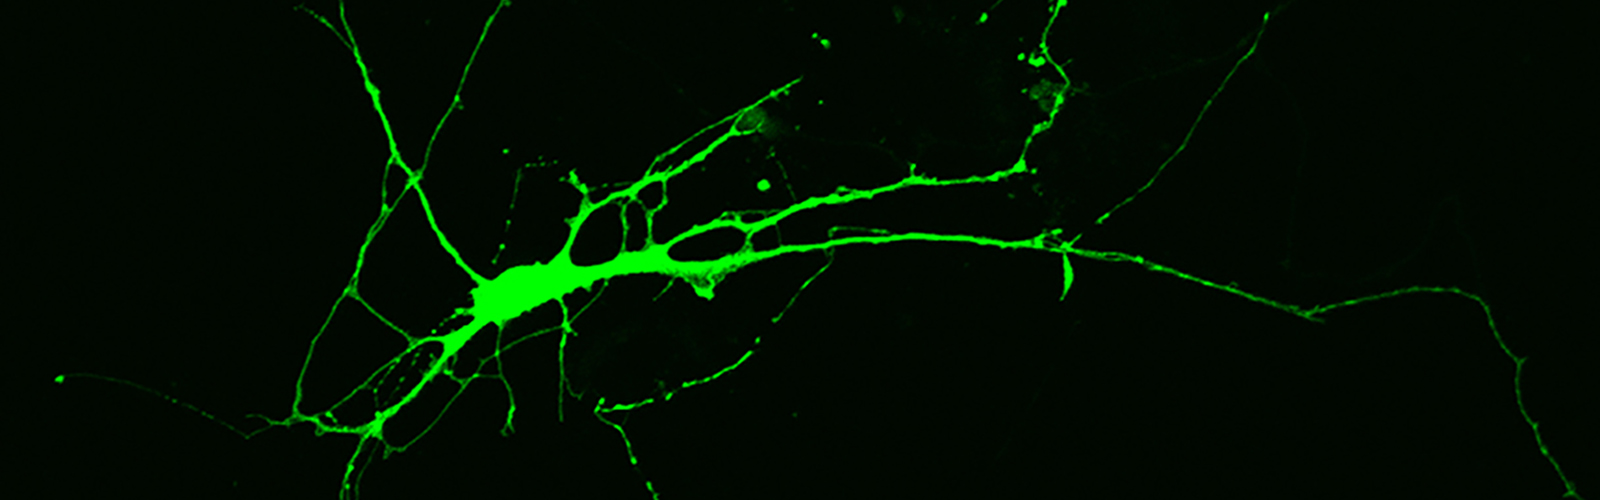 Fluorescence microscopy image of a nerve cell derived from induced pluripotent stem cells donated by an individual with Rett syndrome.